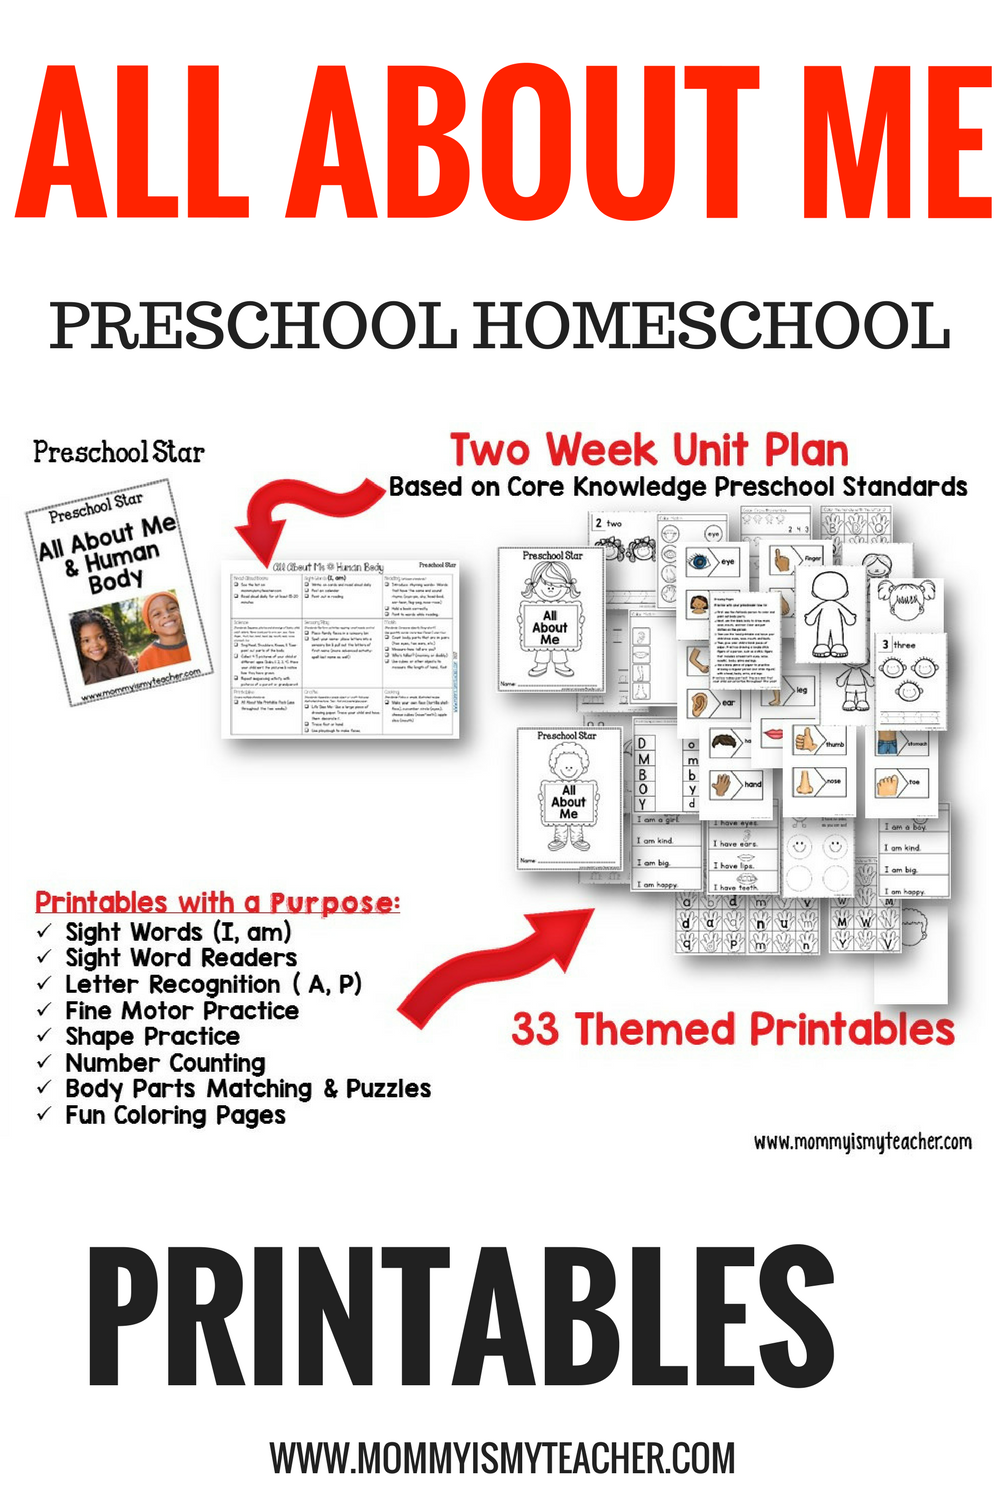 Wow, I love these fun All about me preschool activities and printables! They are great for a preschool homeschool curriculum and preschool activities at home.